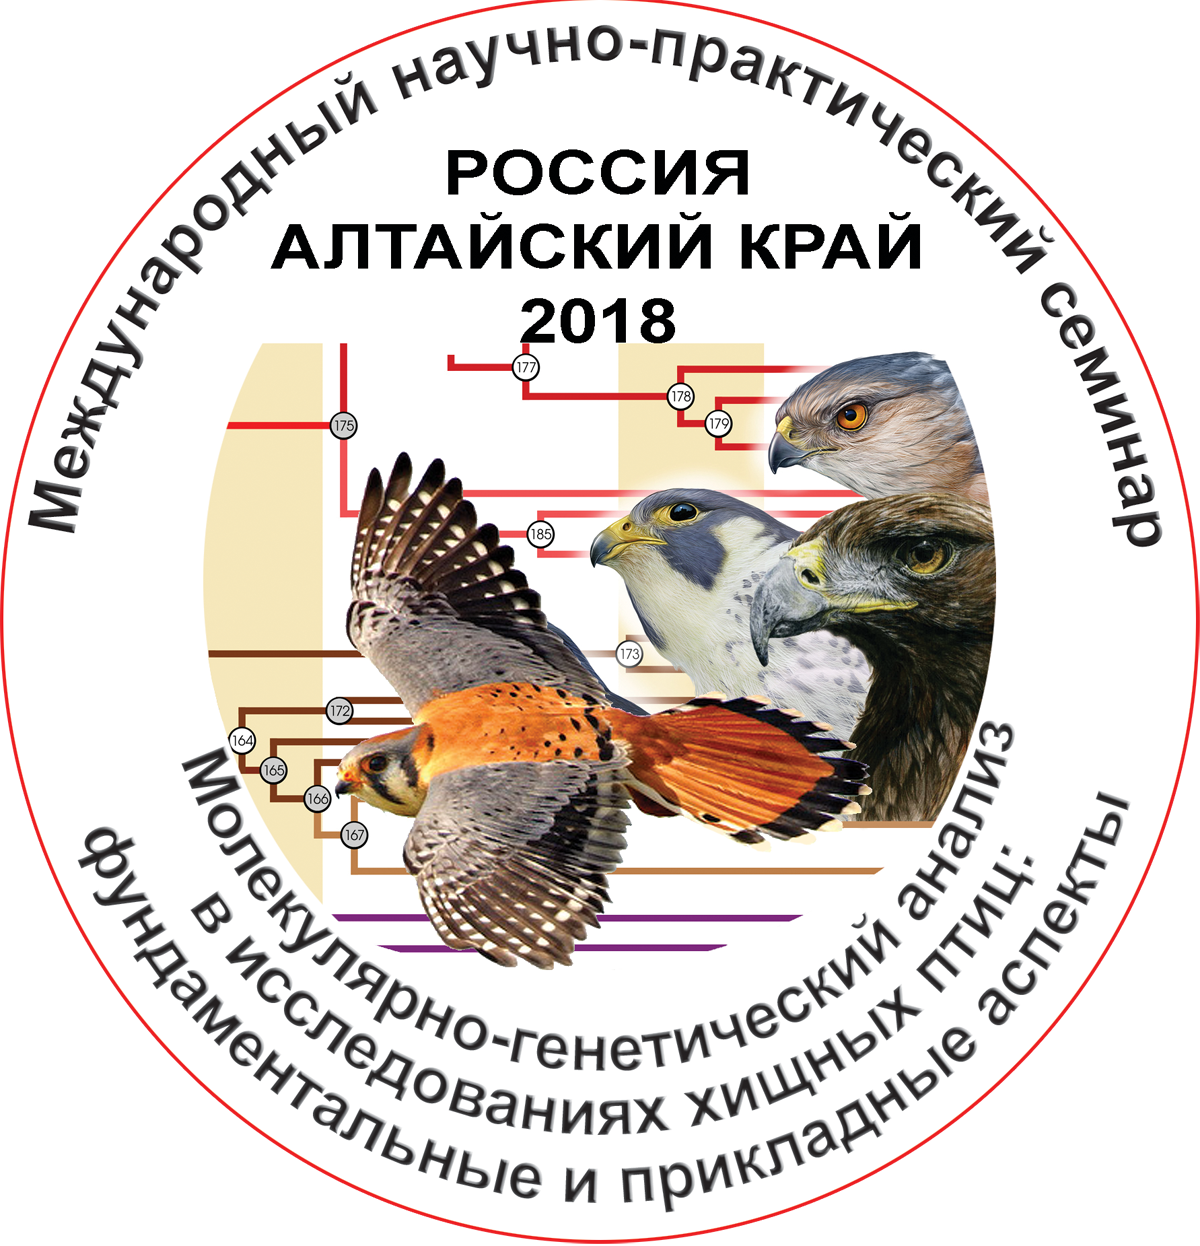 Molecular genetic analysis in research of raptors: fundamental and applied aspects